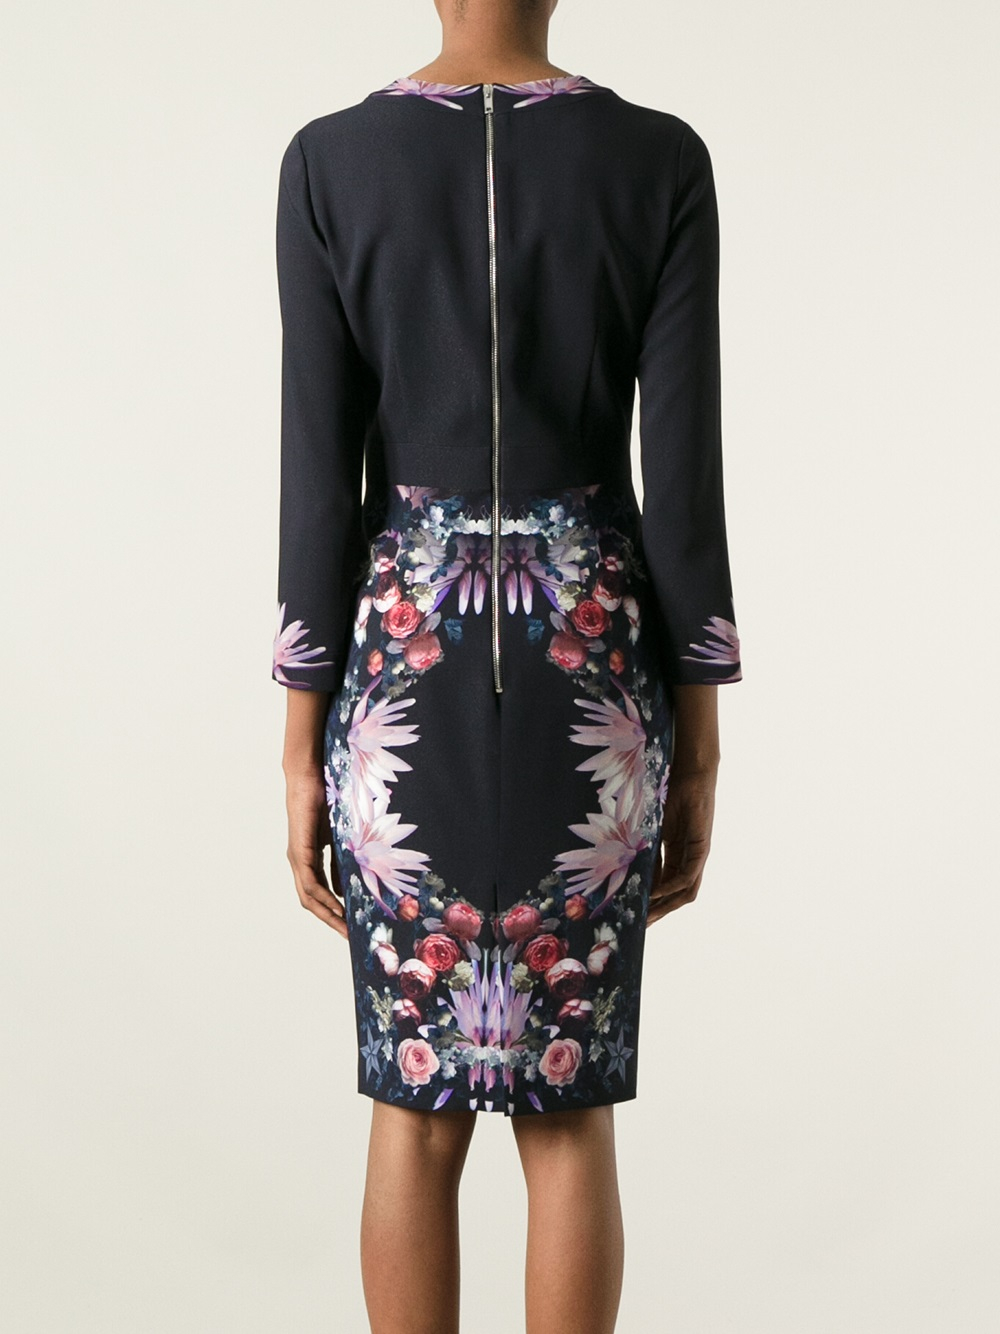 Givenchy Synthetic Floral Print Dress in Black (Purple)